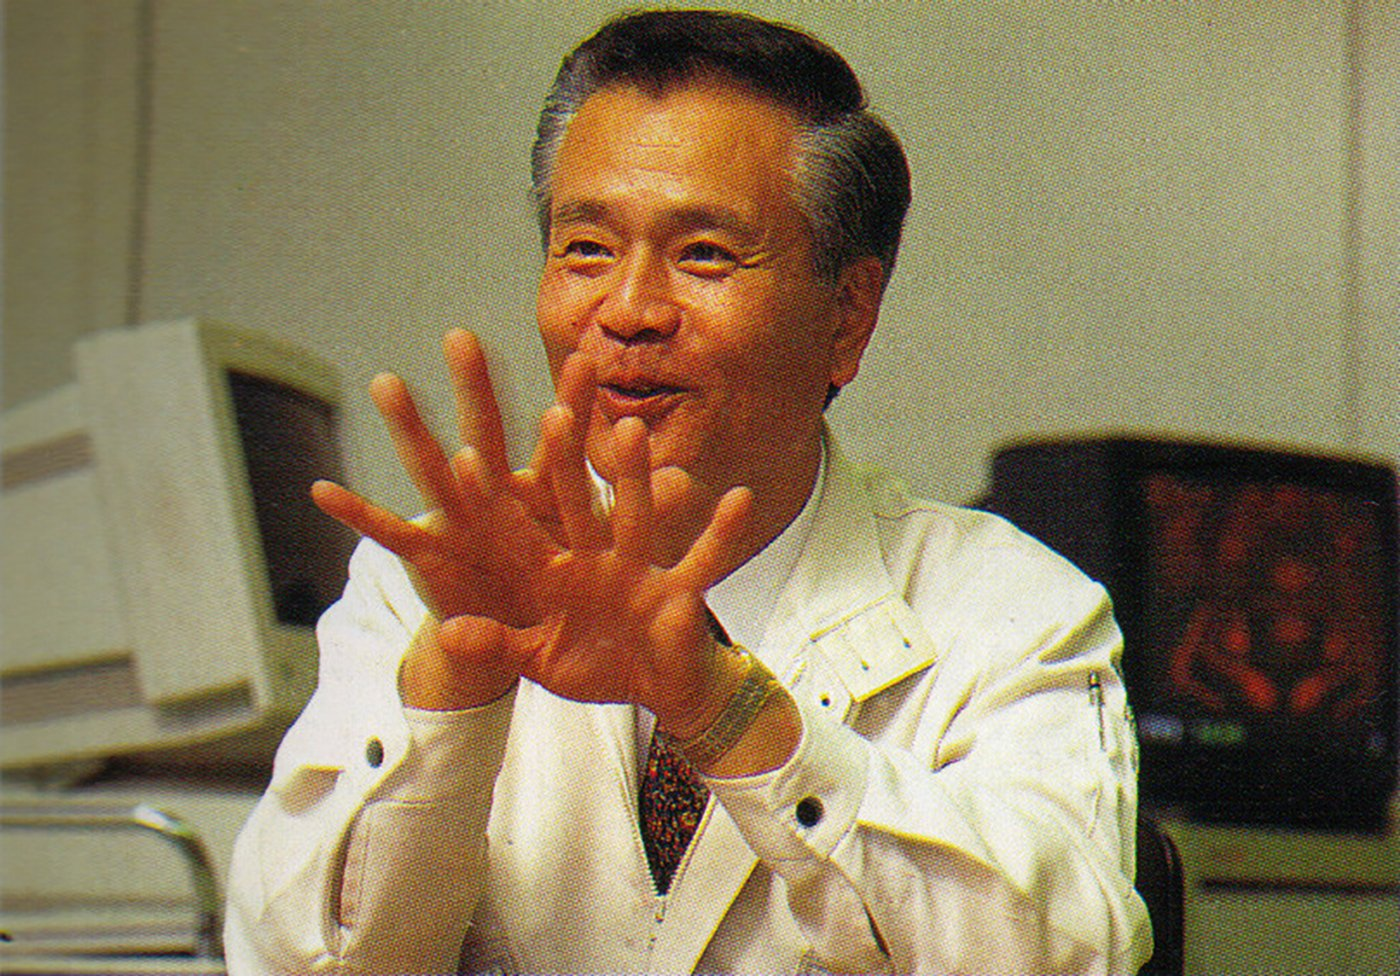 An old quote reveals Gunpei Yokoi didn't leave Nintendo because of the Virtual Boy's failure screenshot